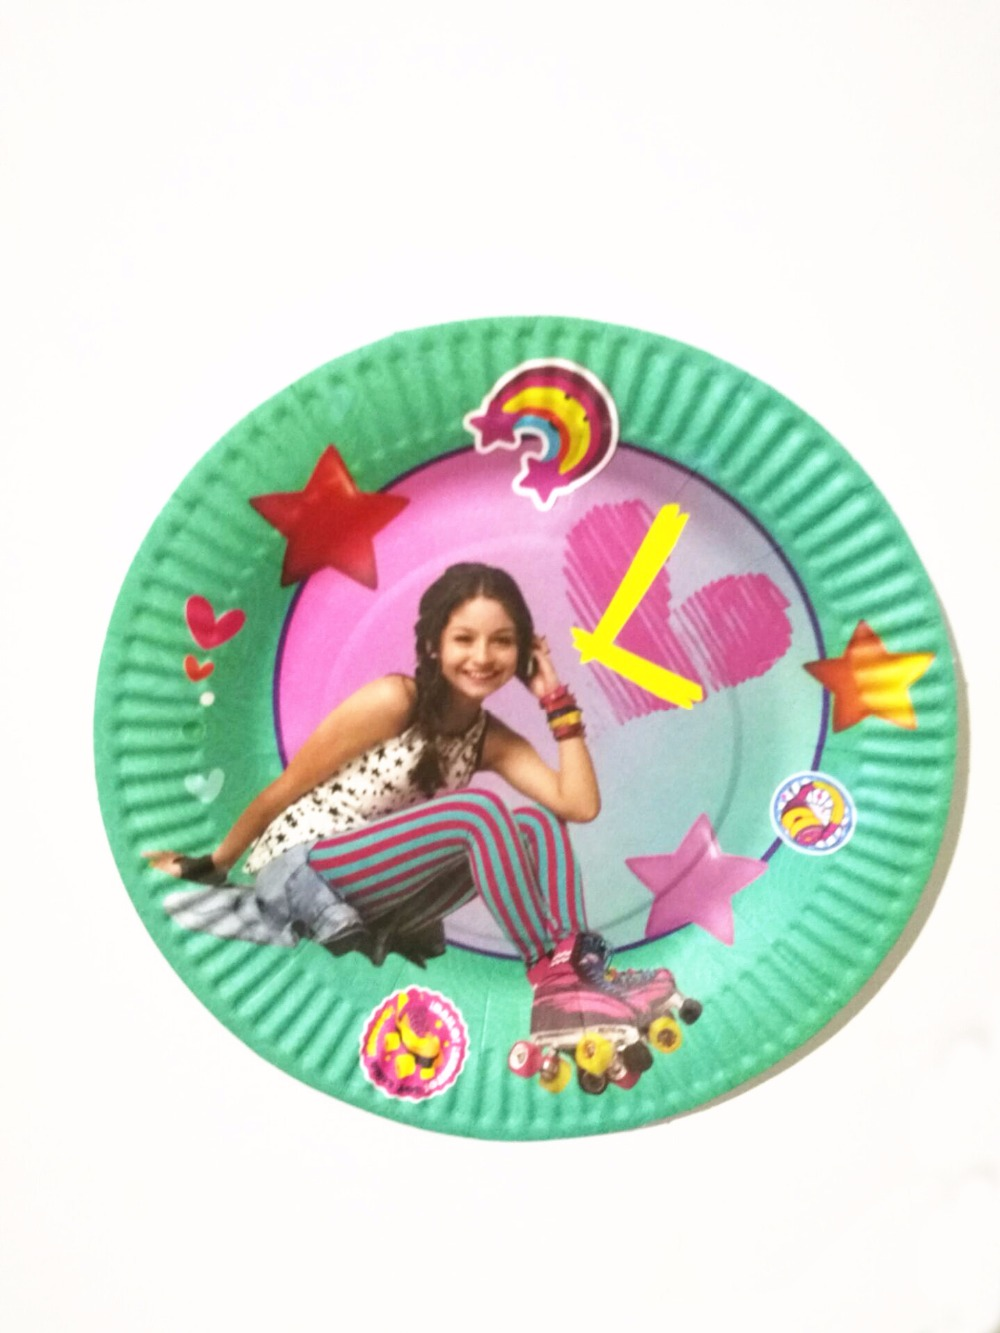 10pcs 7inch Baby Shower soy Luna Paper Plates Happy Birthday Party Cartoon Theme Kids Favors Decoration Supplies Tableware